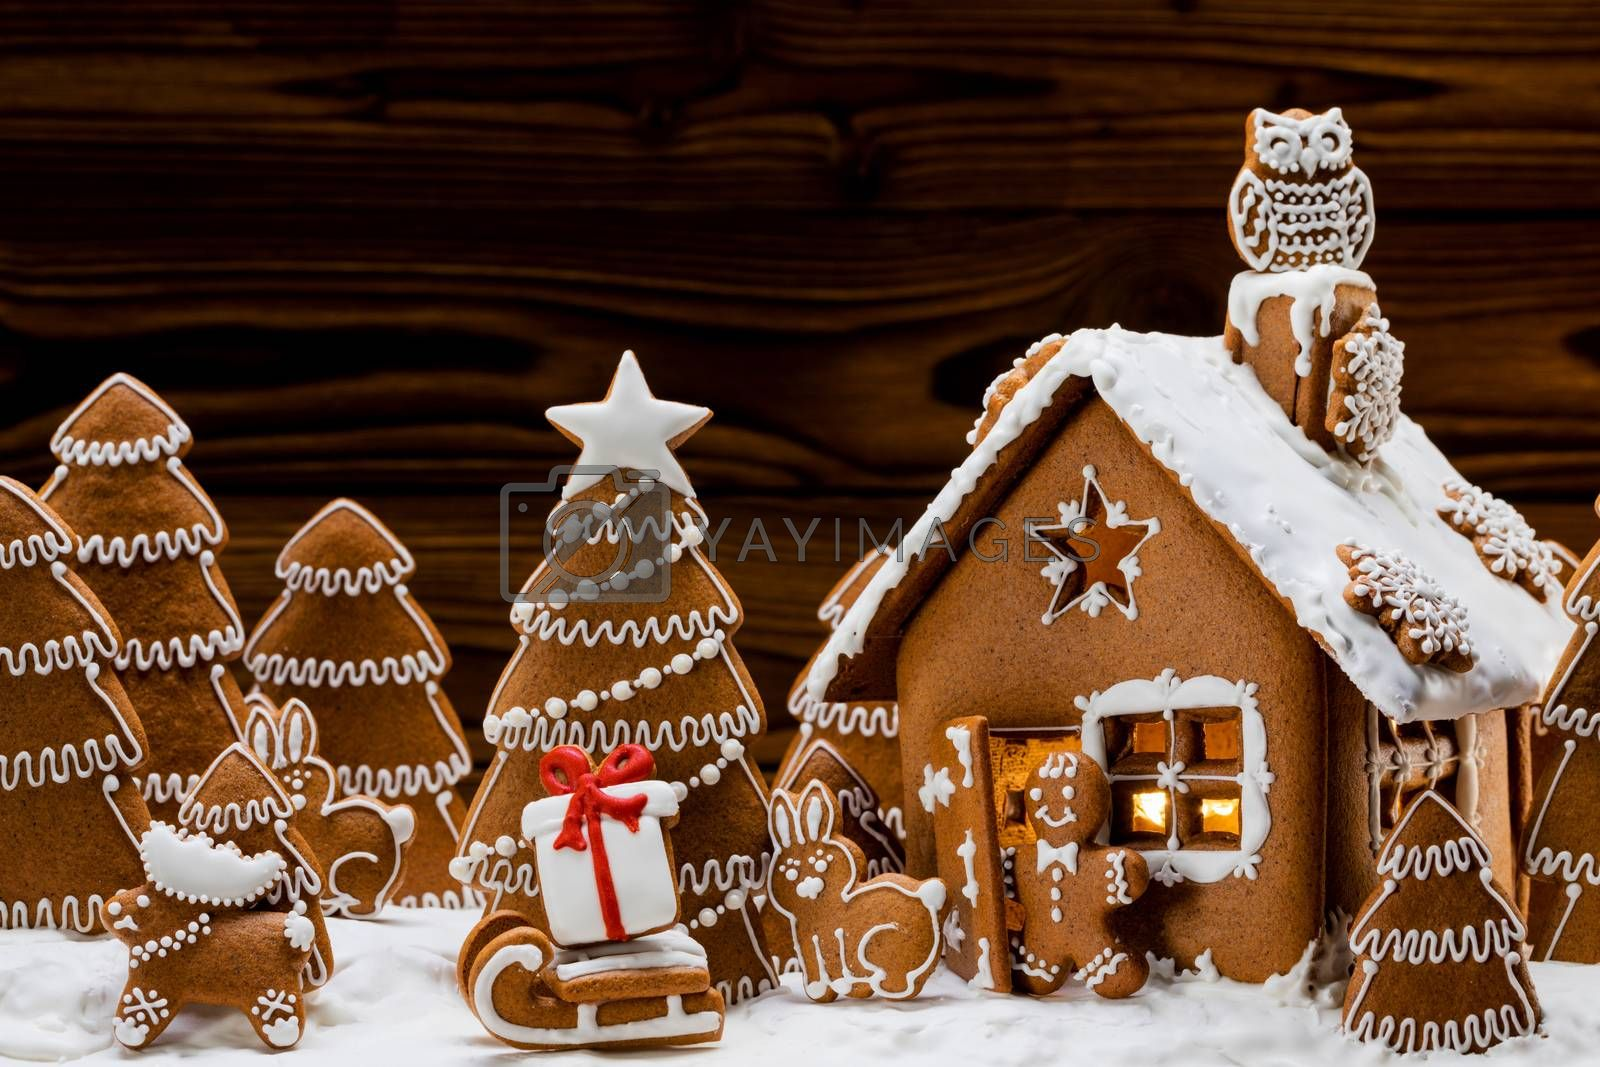 Gingerbread house christmas fir trees and gift cookies winter holiday celebration concept